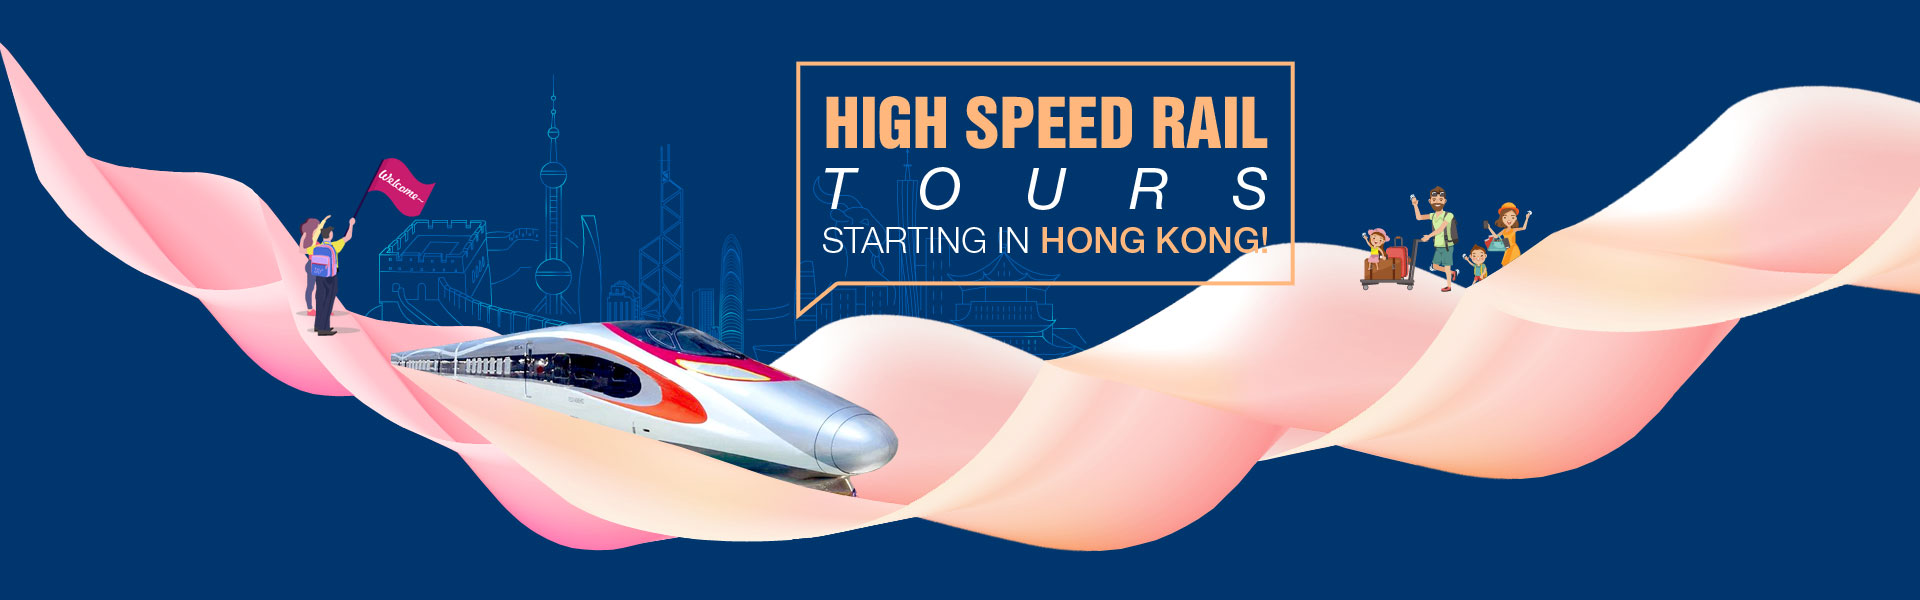 High Speed Rail Tours Starting from Hong Kong for CTA